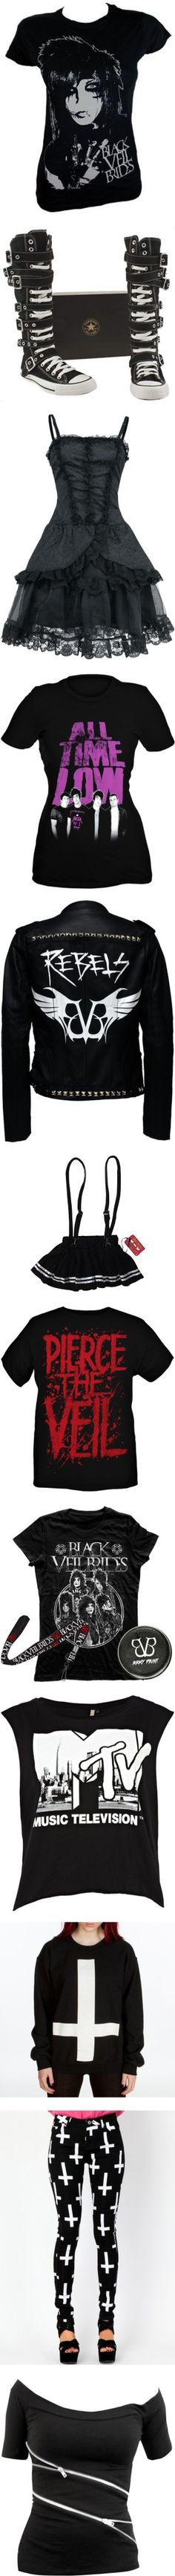 """Stuff I Want - Black"" by tiffanyterror666 ❤ liked on Polyvore"